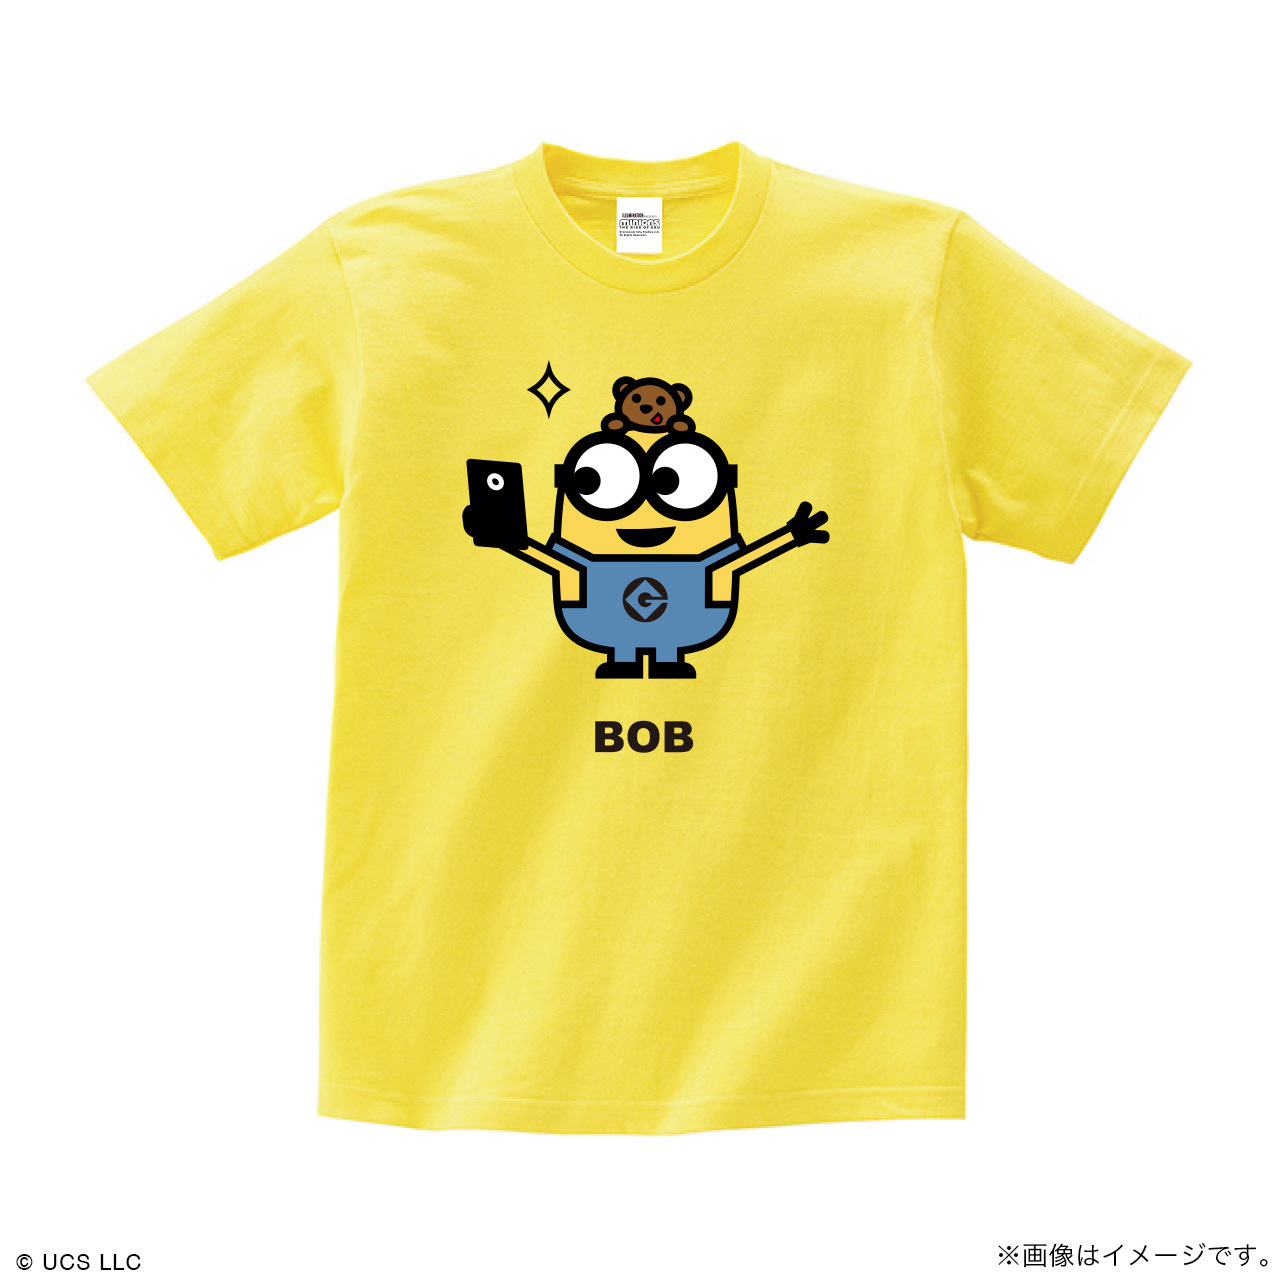 Tシャツ/ミニオン(ボブ イエロー)【MINIONS POP UP STORE 限定】